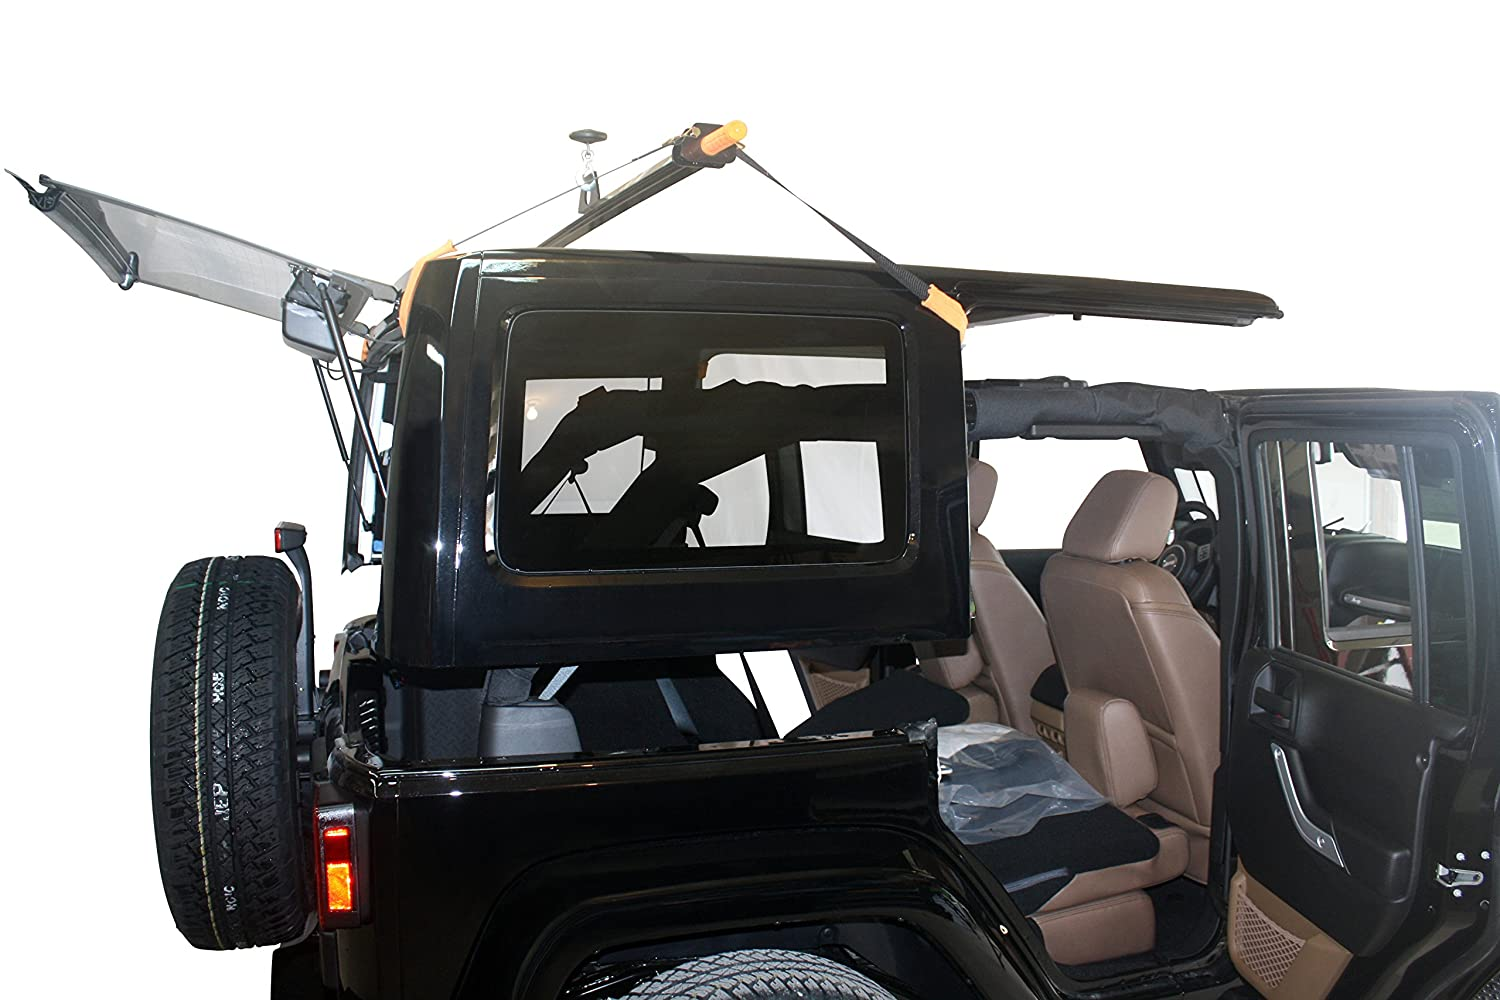 Marvelous Amazon.com: J BARR: Jeep Wrangler Hardtop Removal And Storage System  (4 DOOR Model (Full Kit)): Home Improvement